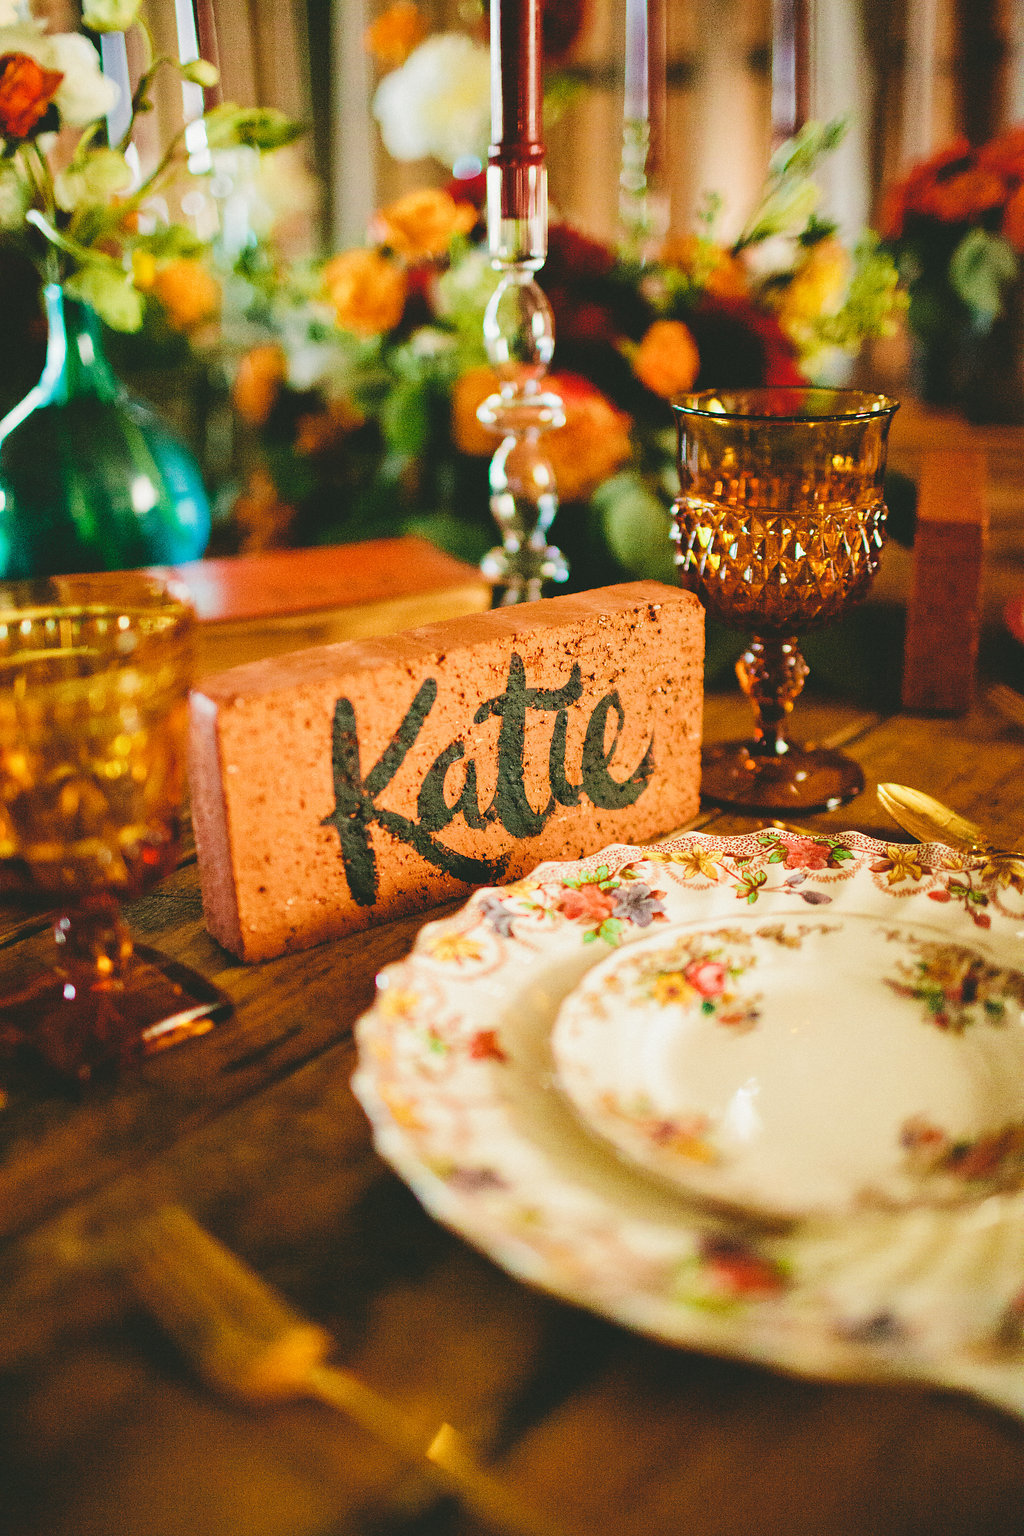 Vintage plate place setting with hand painted name card for dinner party with Local Table